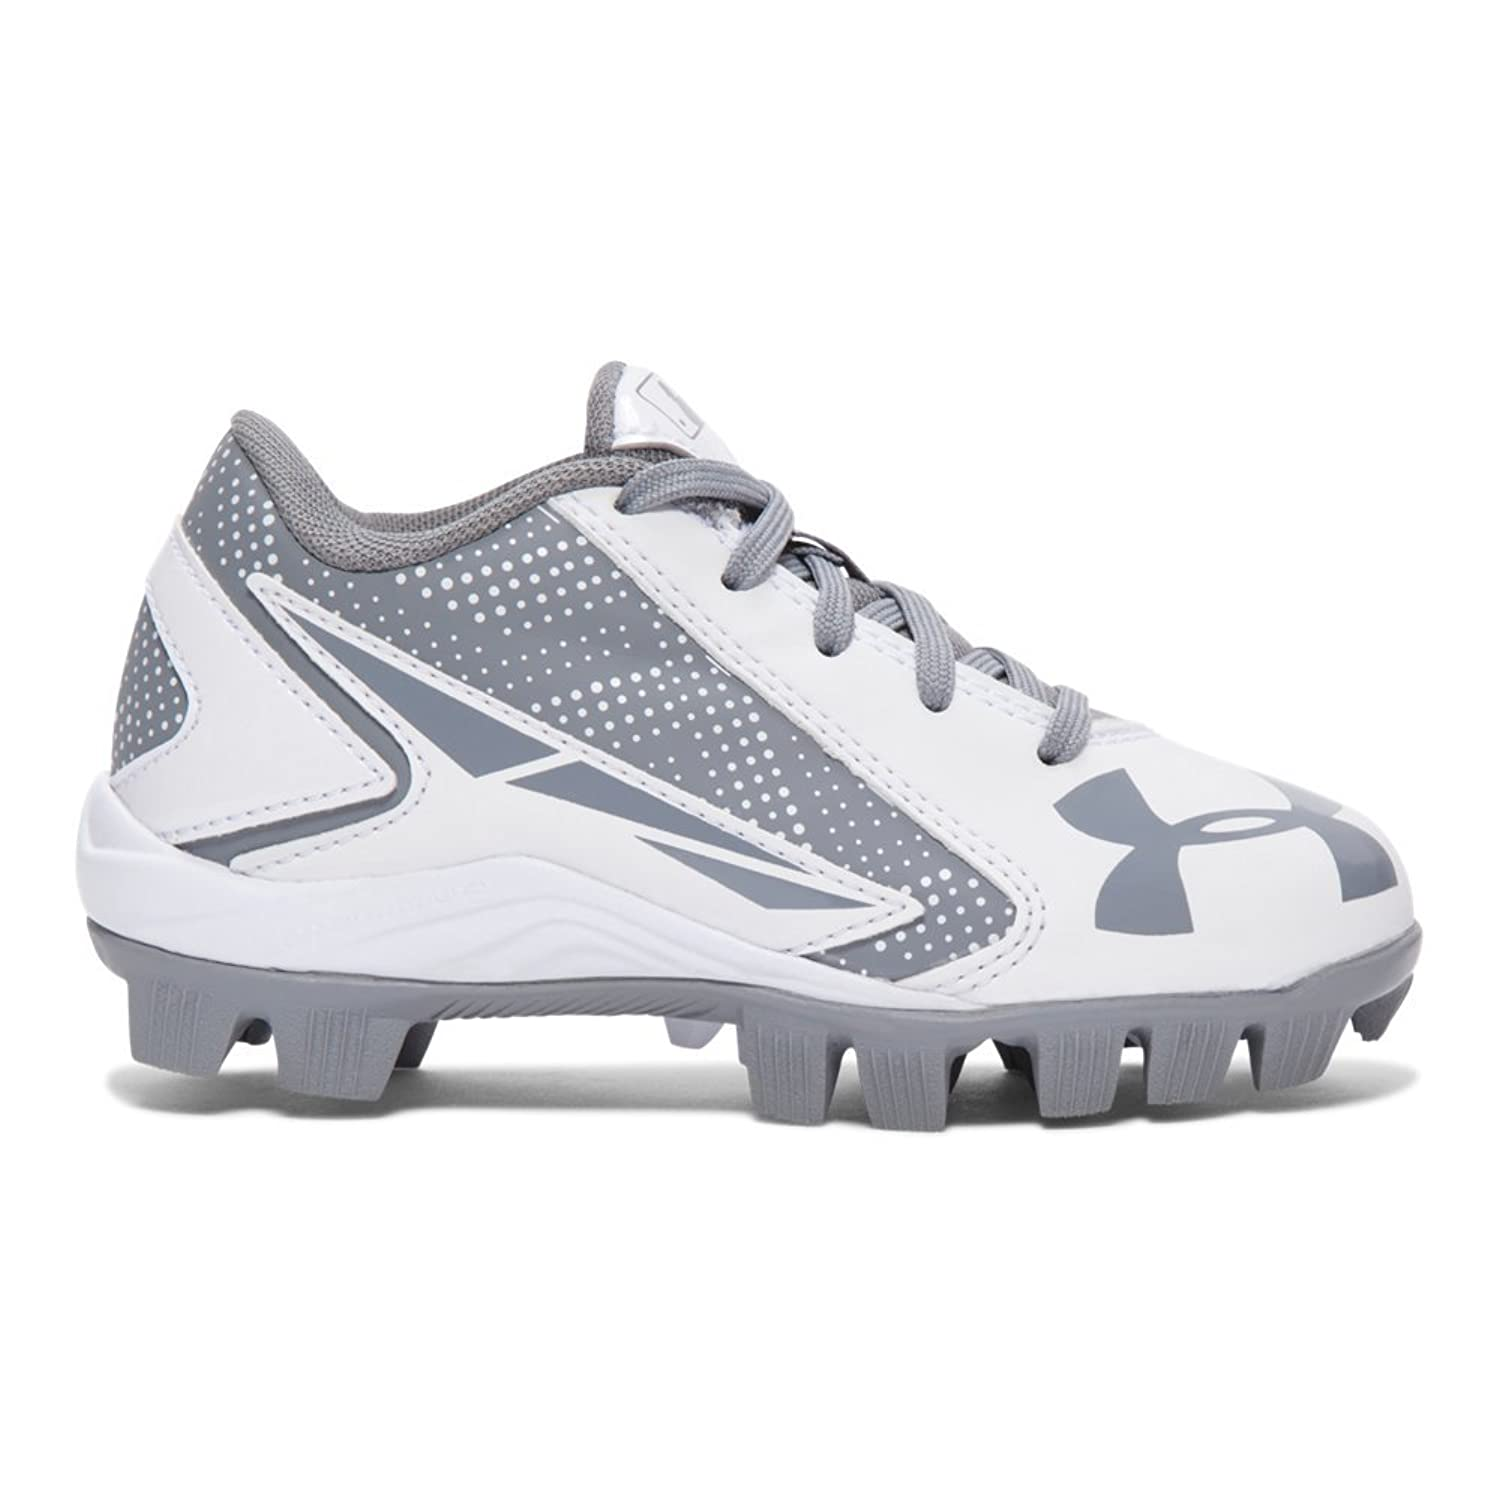 7f0262695f4 Cheap under armour baseball cleats white Buy Online  OFF45% Discounted